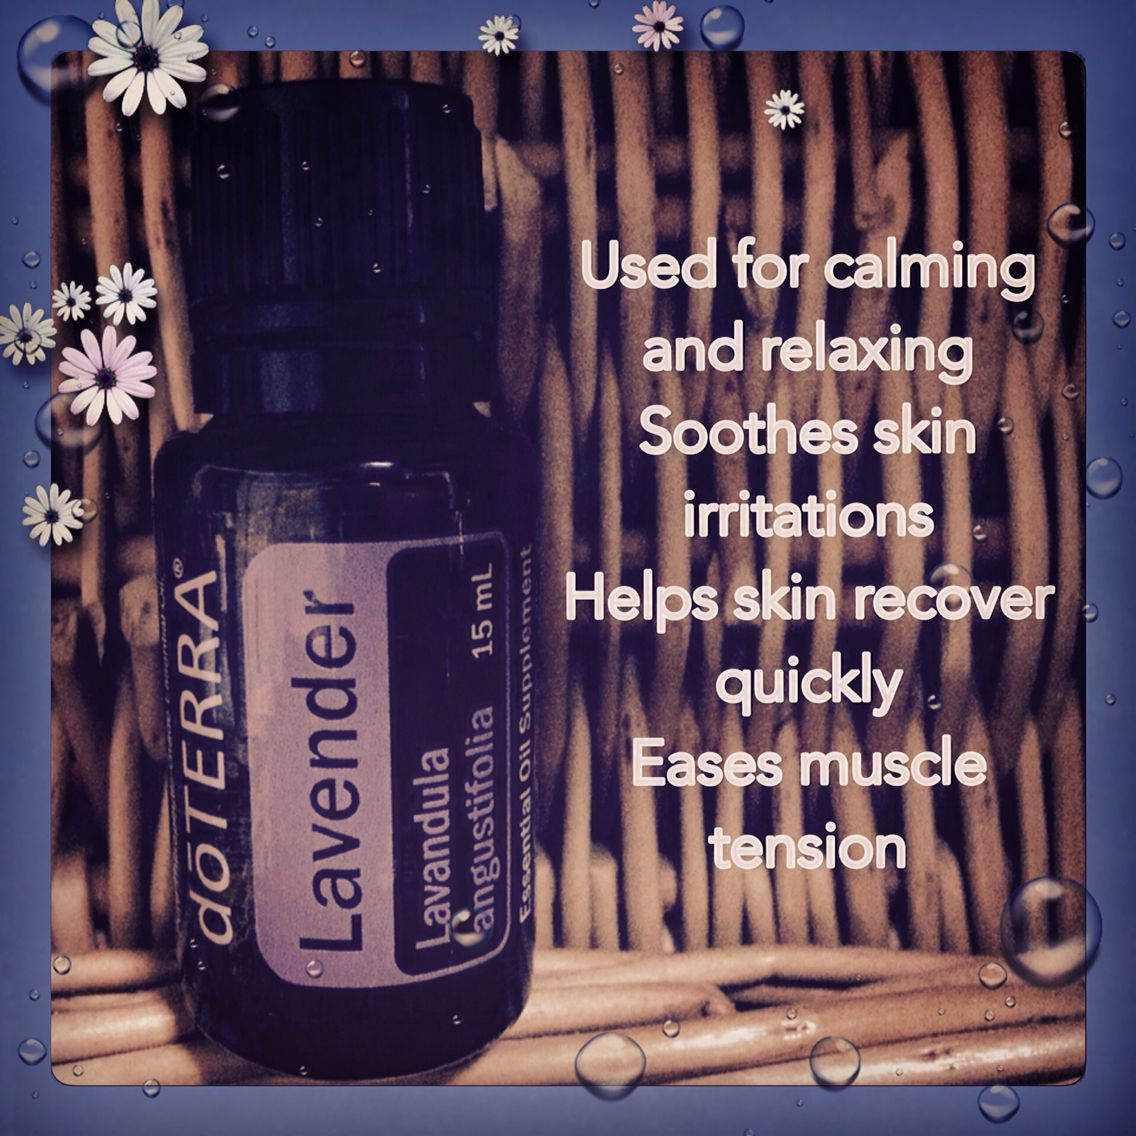 Lavender smells amazing and has great benefits! To order visit: www.mydoterra.com/sdmcduffee